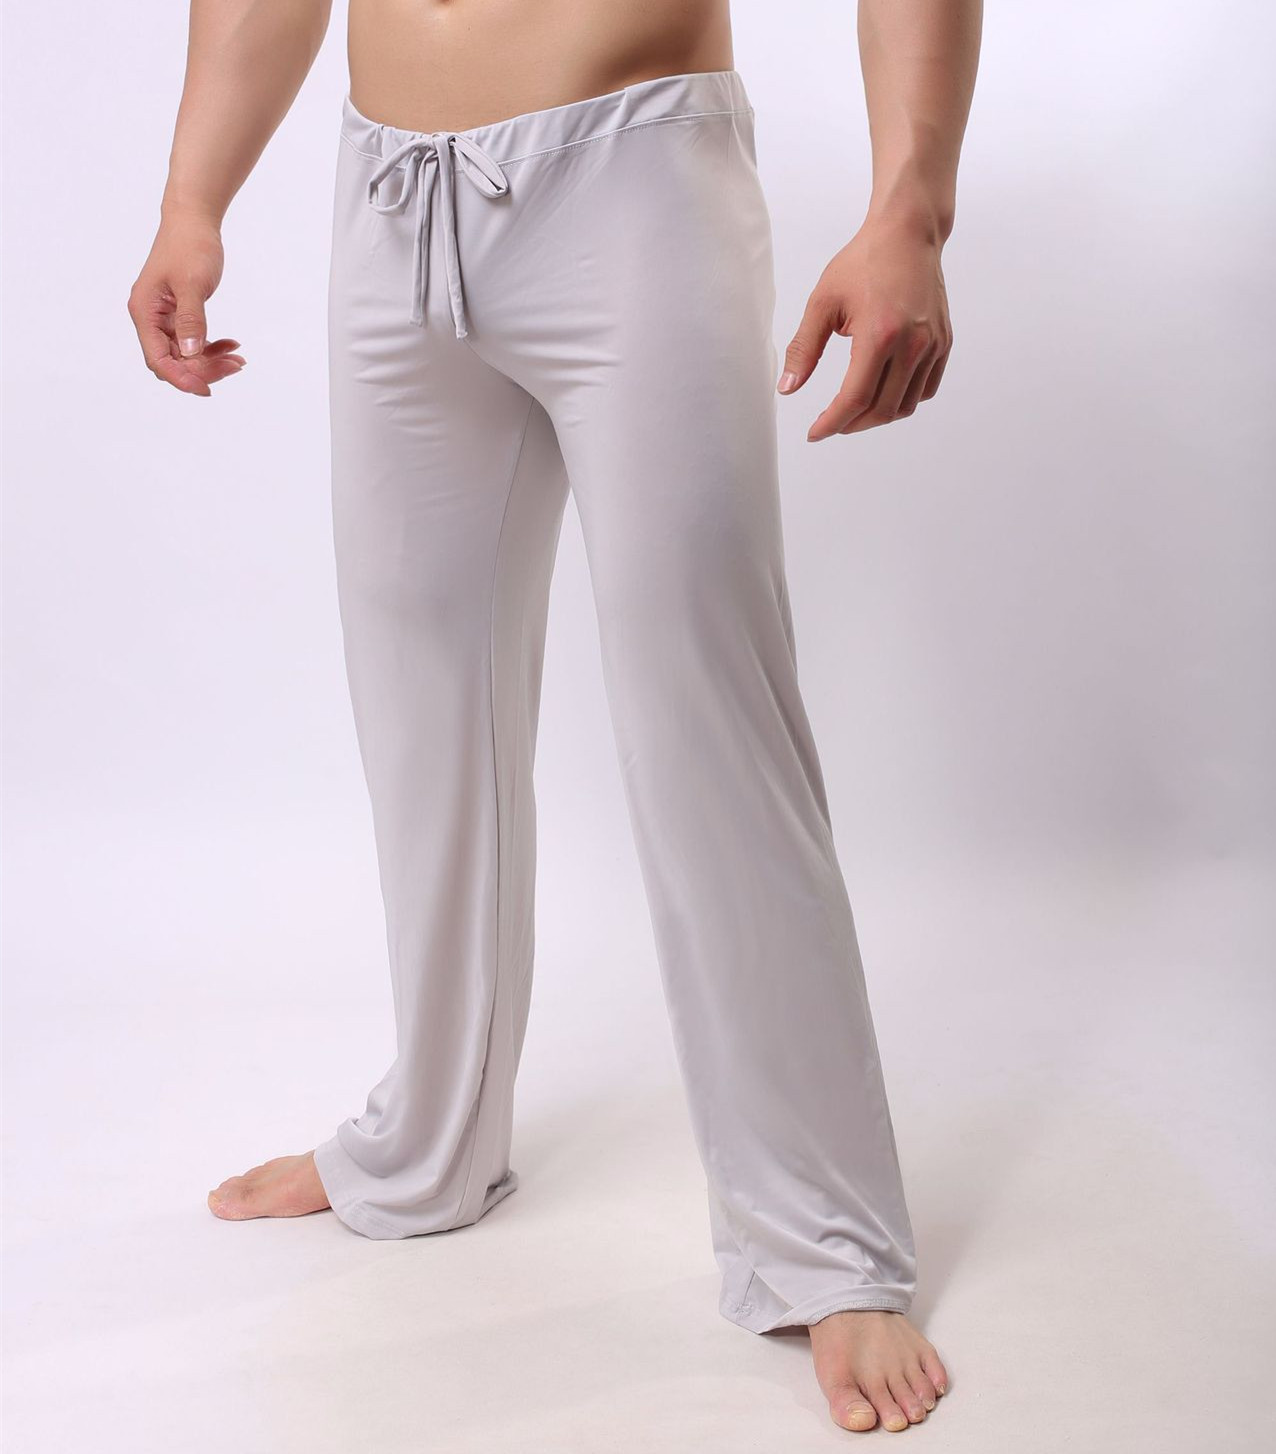 Sexy Male Sleep Bottoms Lounge Pants Soft Ice Silk Home Clothes Men's Casual Pants Breathable Homewear Lacing Pyjamas Trousers